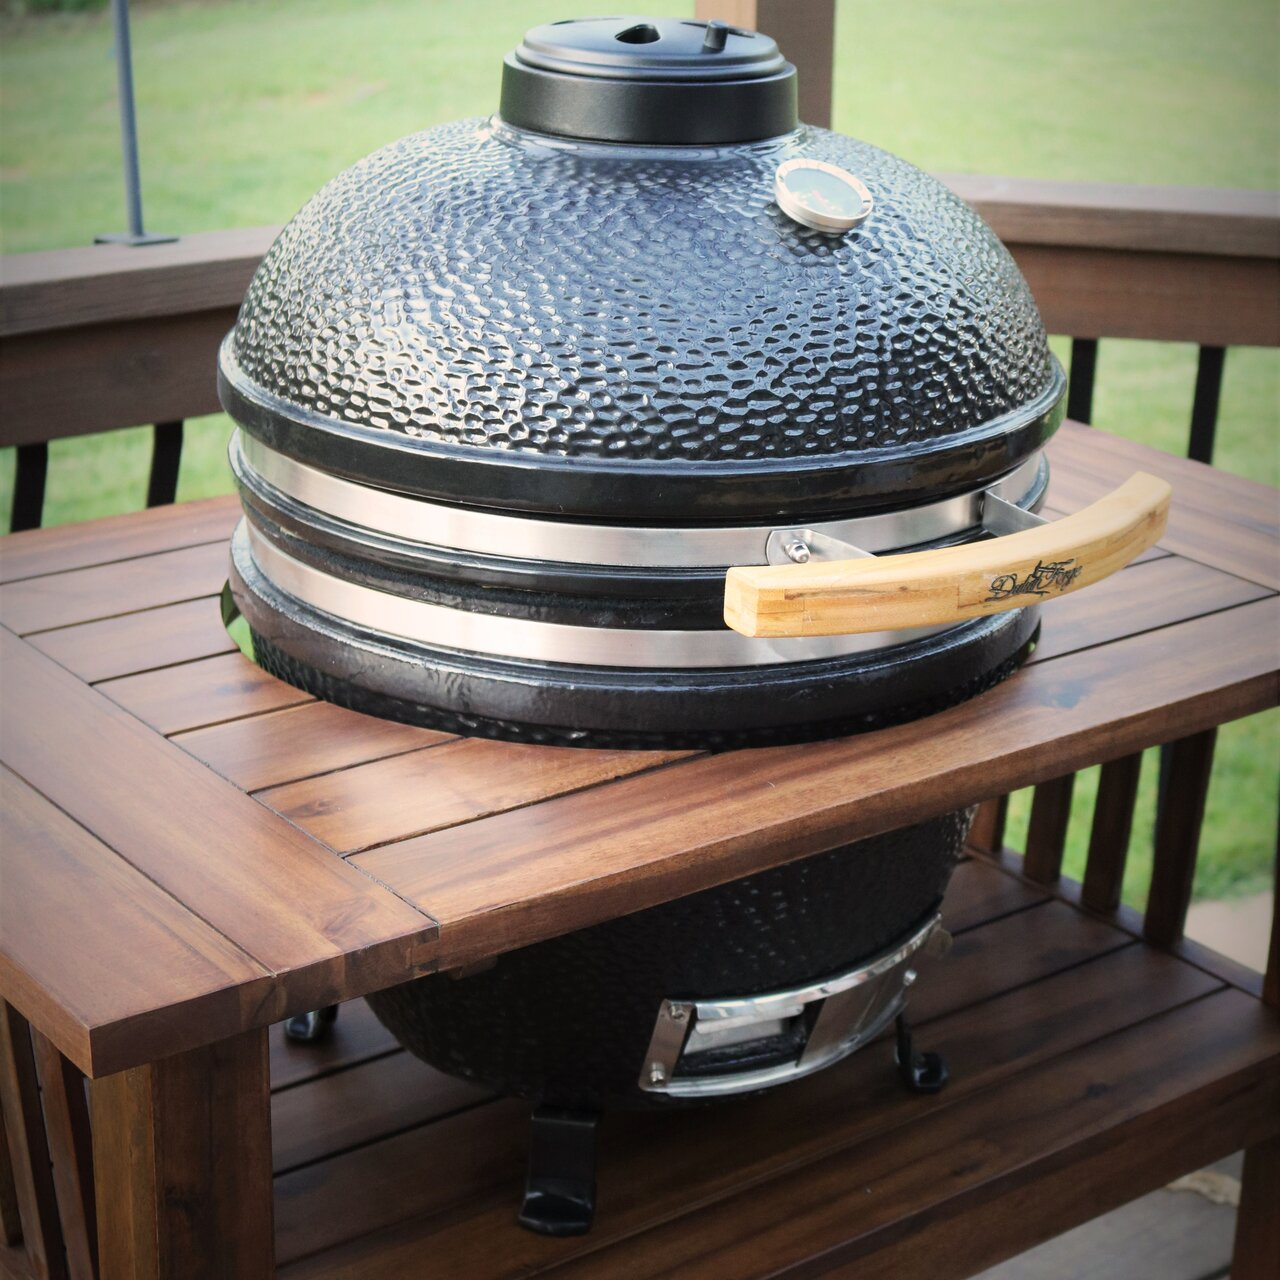 duluth forge 16 5 kamado built in charcoal grill with smoker. Black Bedroom Furniture Sets. Home Design Ideas